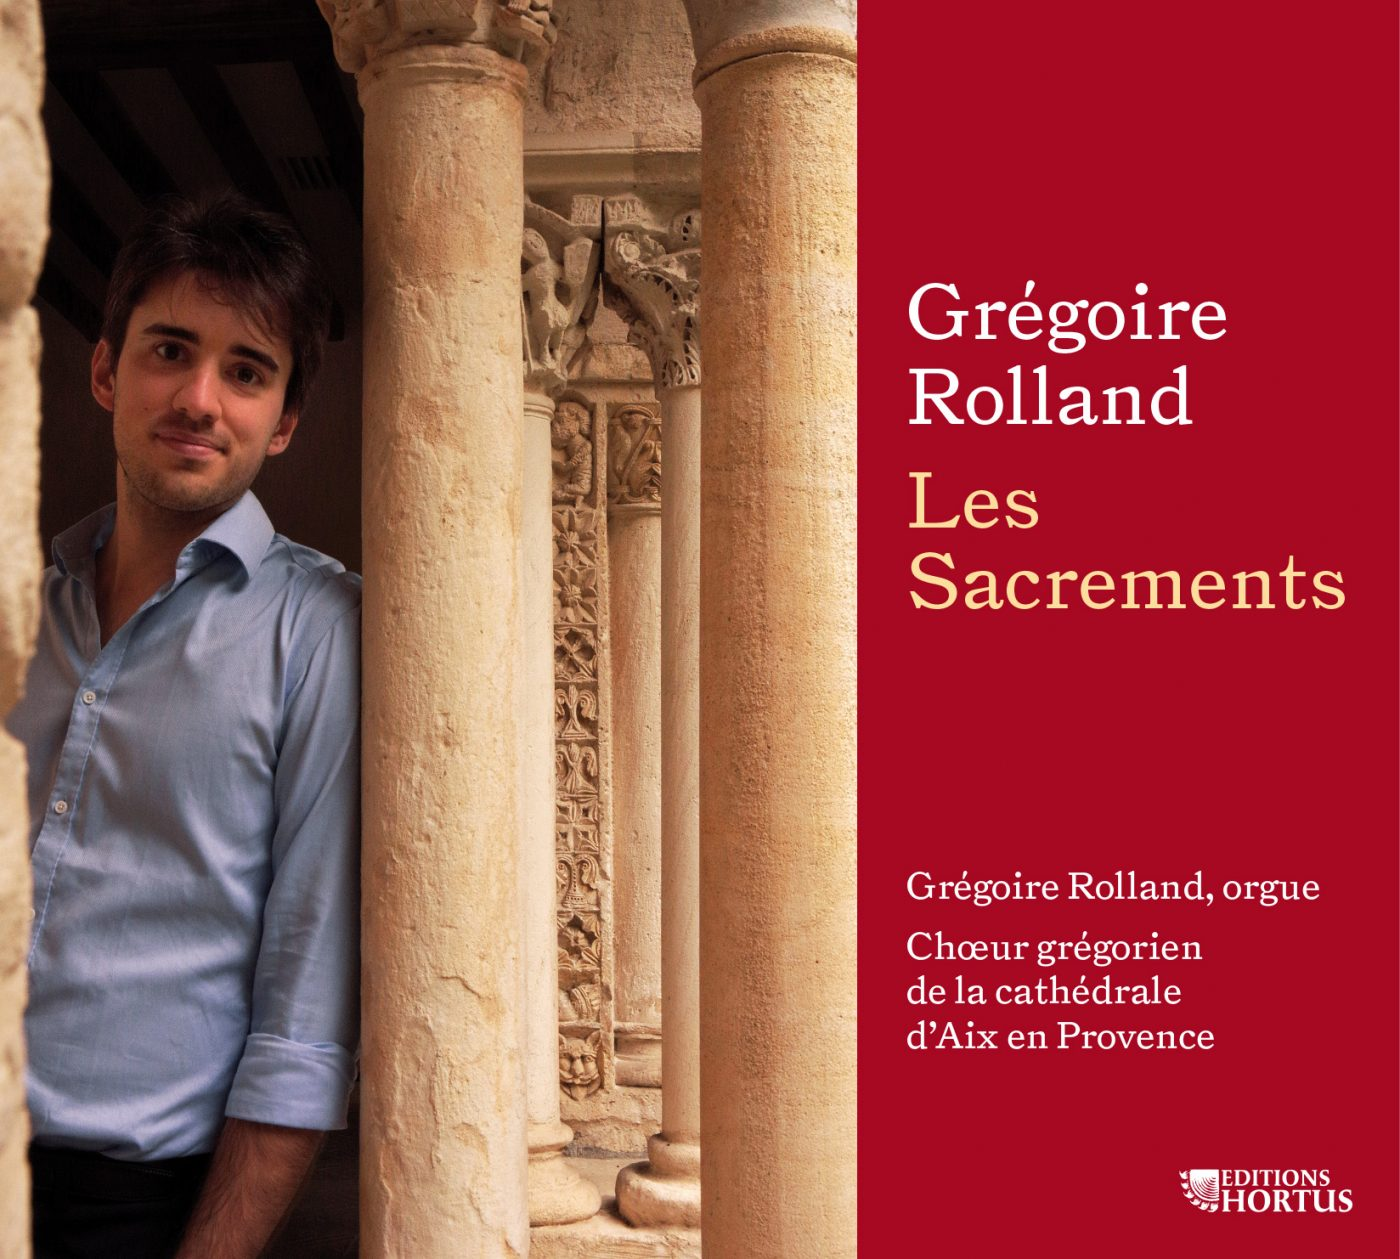 photo du laureat Grégoire ROLLAND